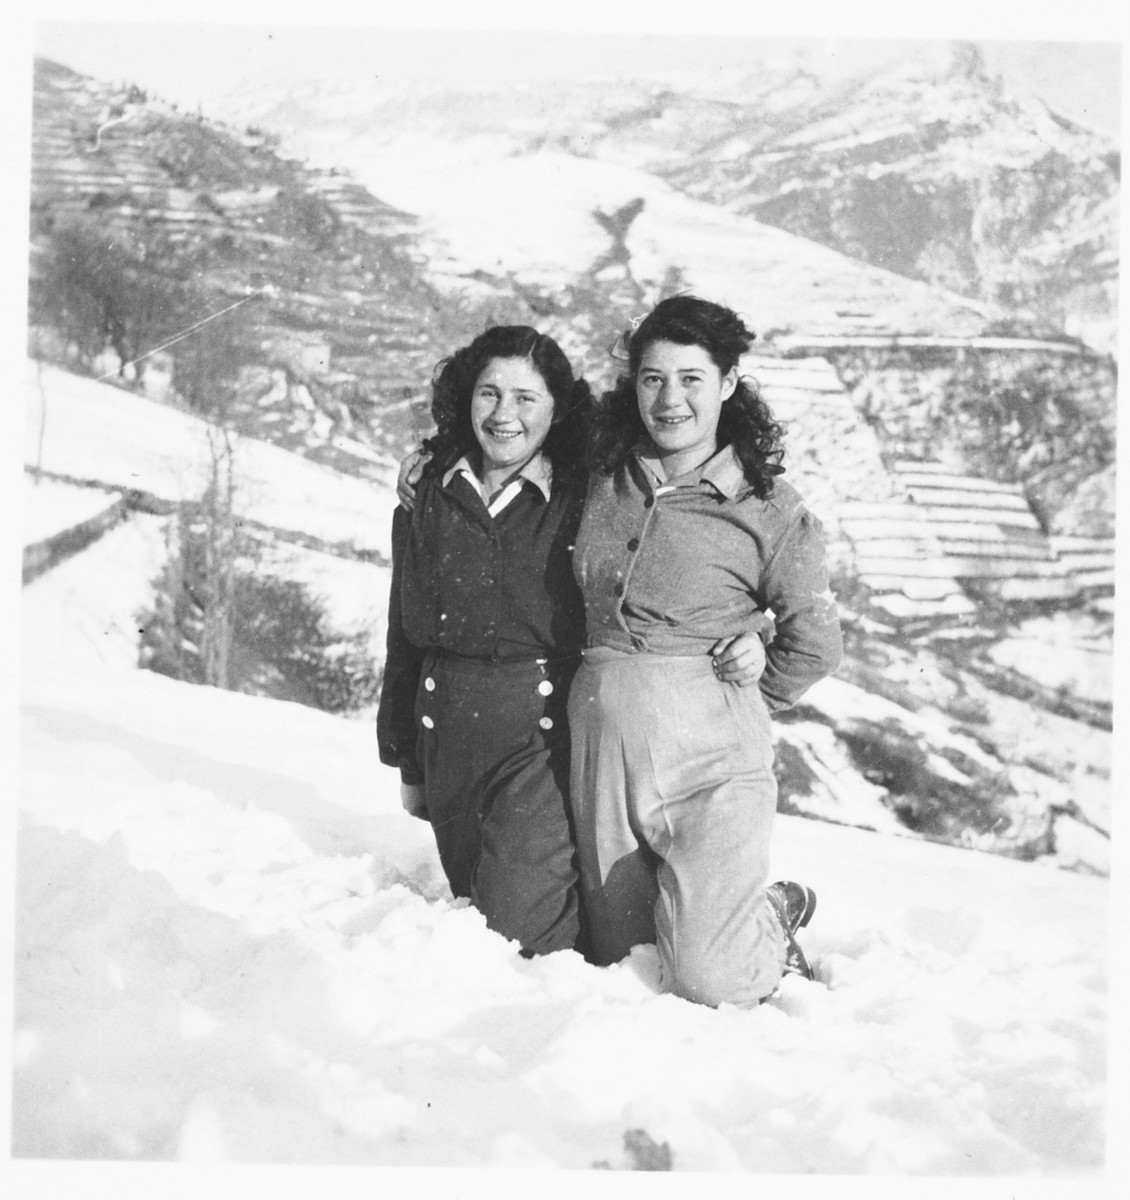 Two teenage girls pose together in the snow outside the Selvino children's home.  The Italian Alps can be seen in the background.